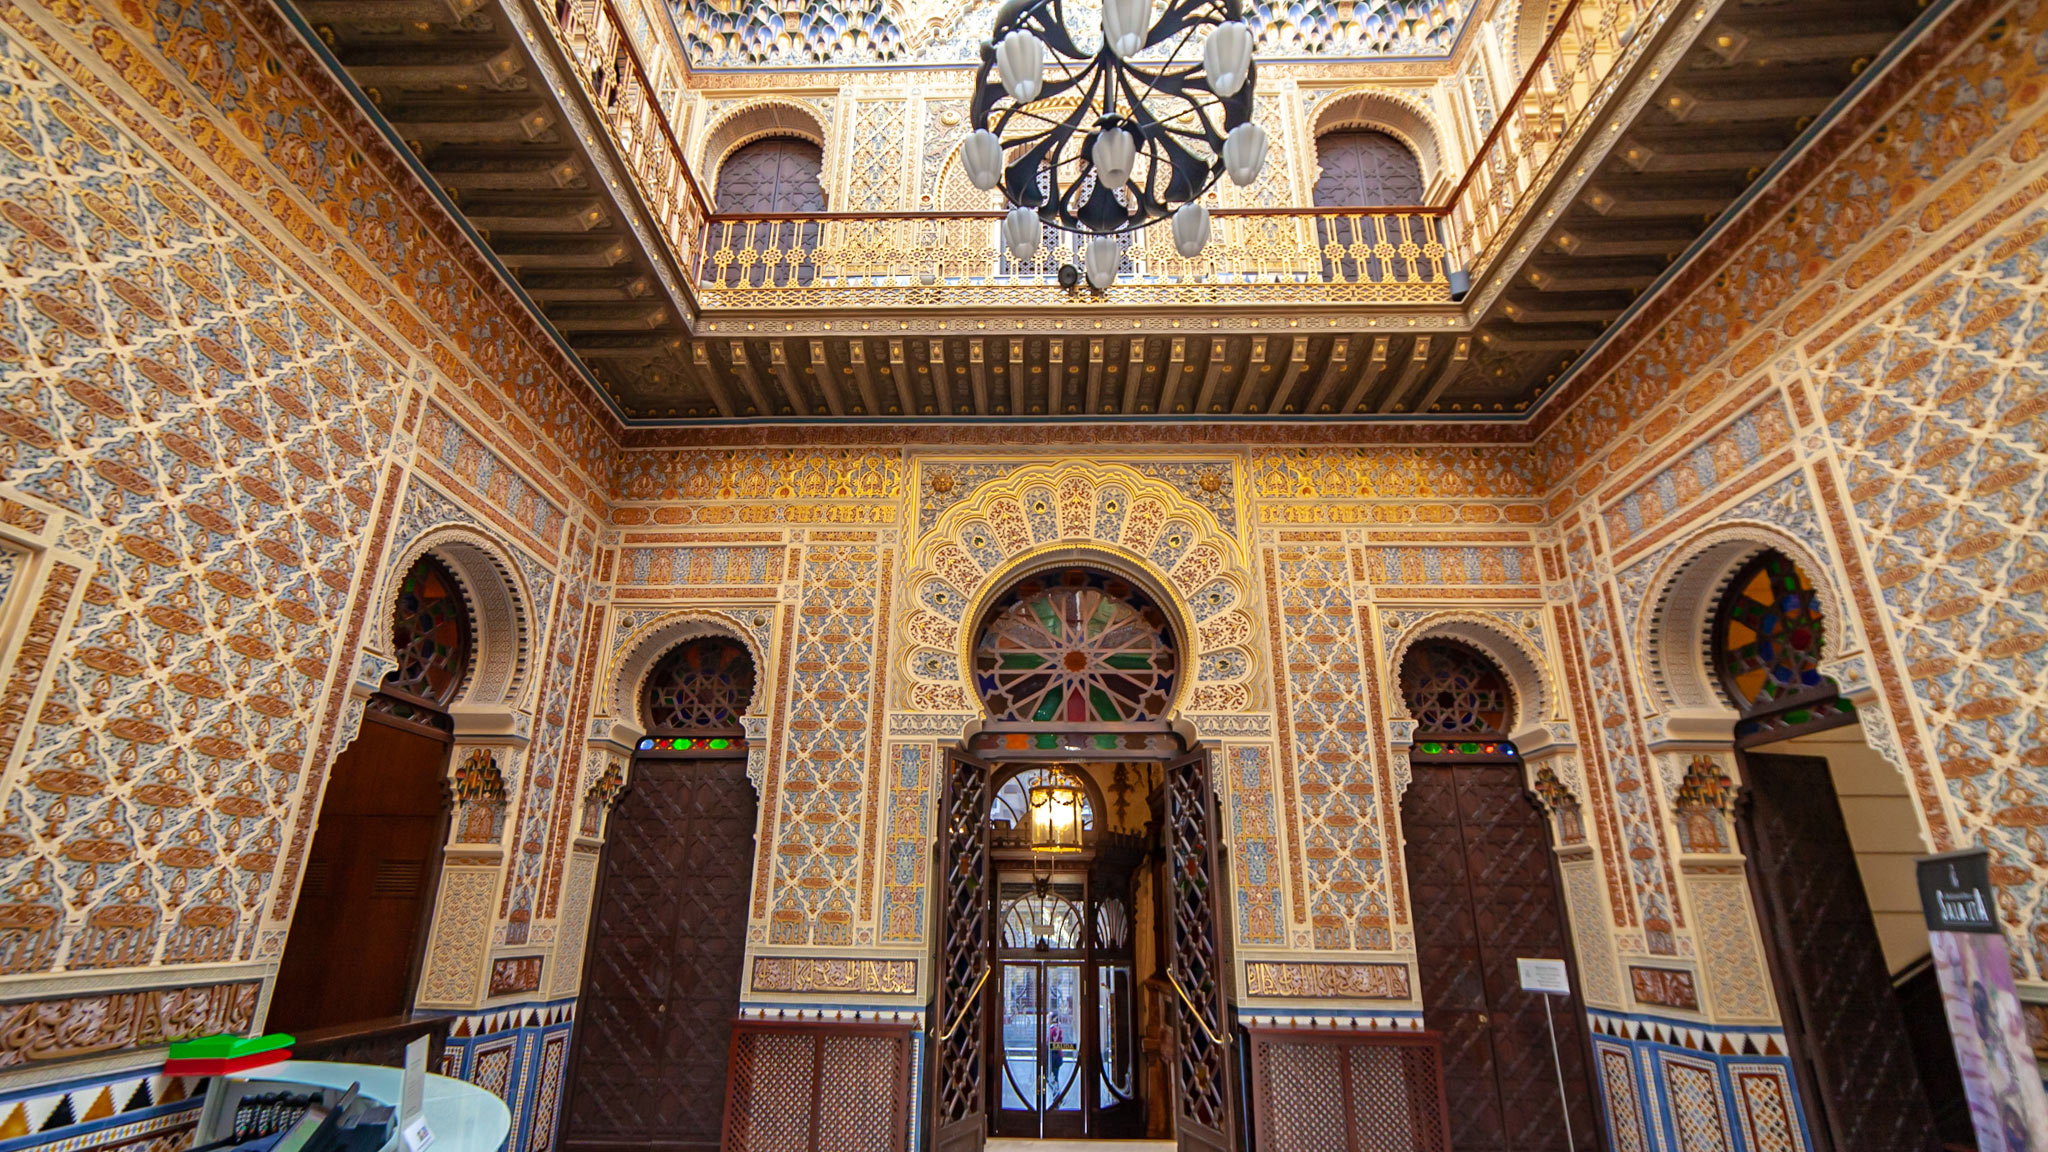 An ornate room in mainly gold and an Islamic style of design in the Real Casino of Murcia